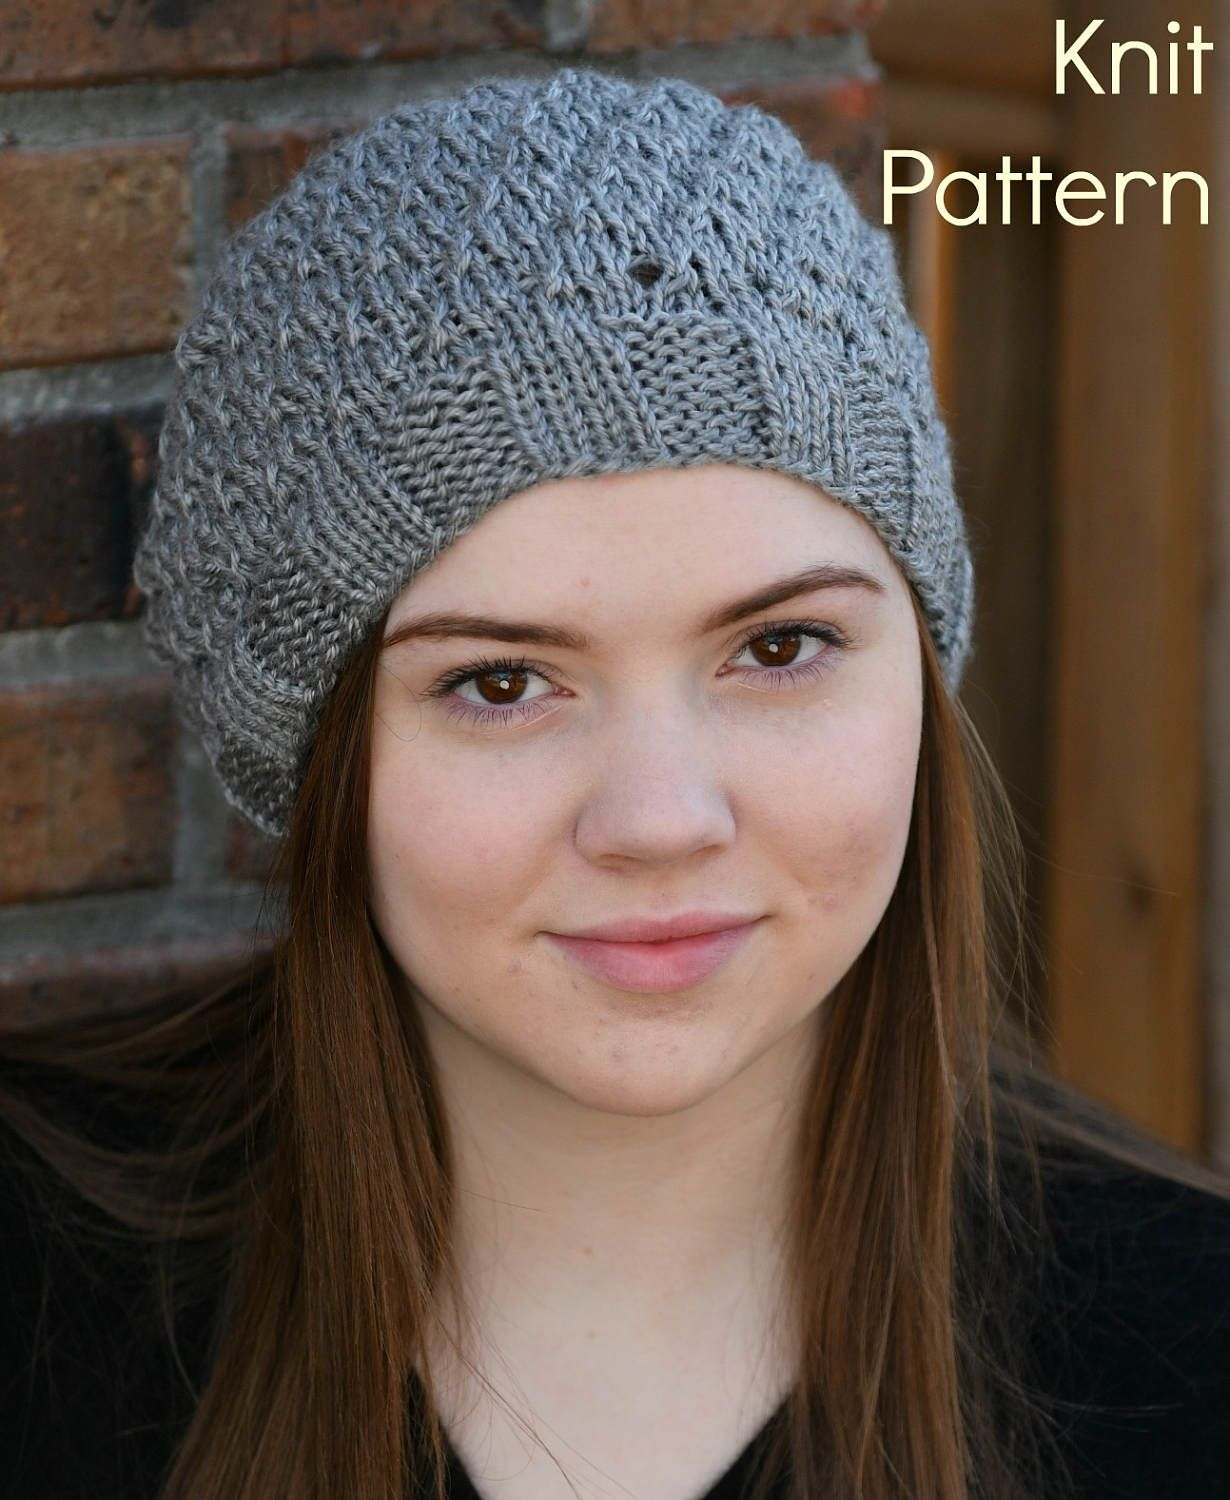 Ginger Beret Pattern - Knit Slouchy Beret Hat Pattern - Hand Knit Hat or  Cap by MainlyKnits on Etsy 2a0f6061b67